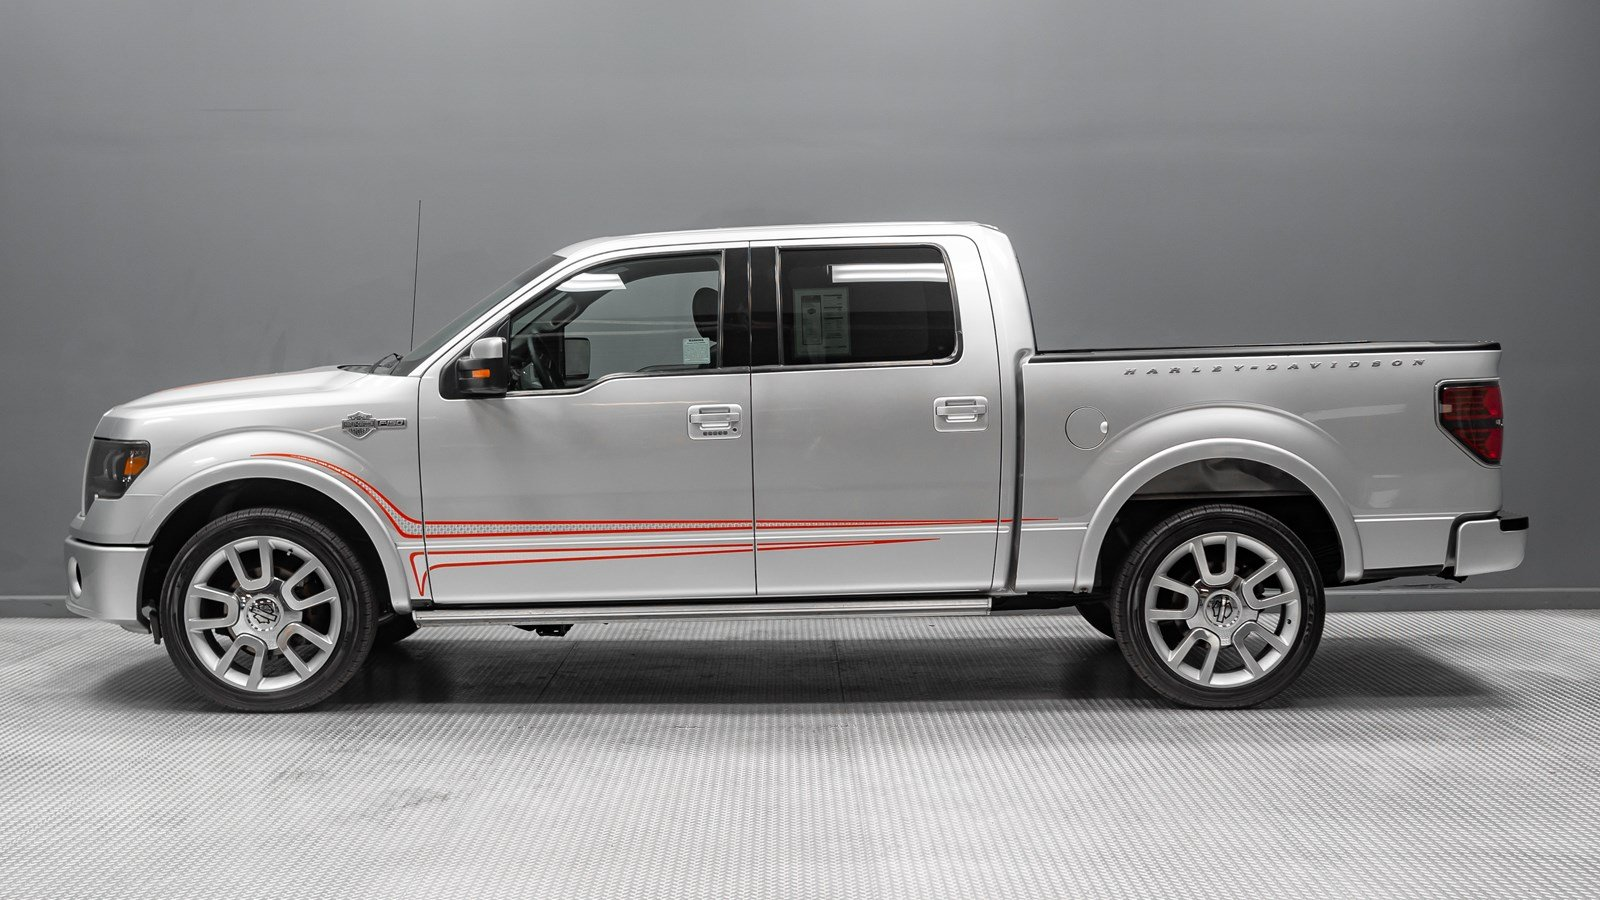 Pre Owned 2011 Ford F 150 Harley Davidson Crew Cab Pickup In Buena Fuse Diagram Interior Sync